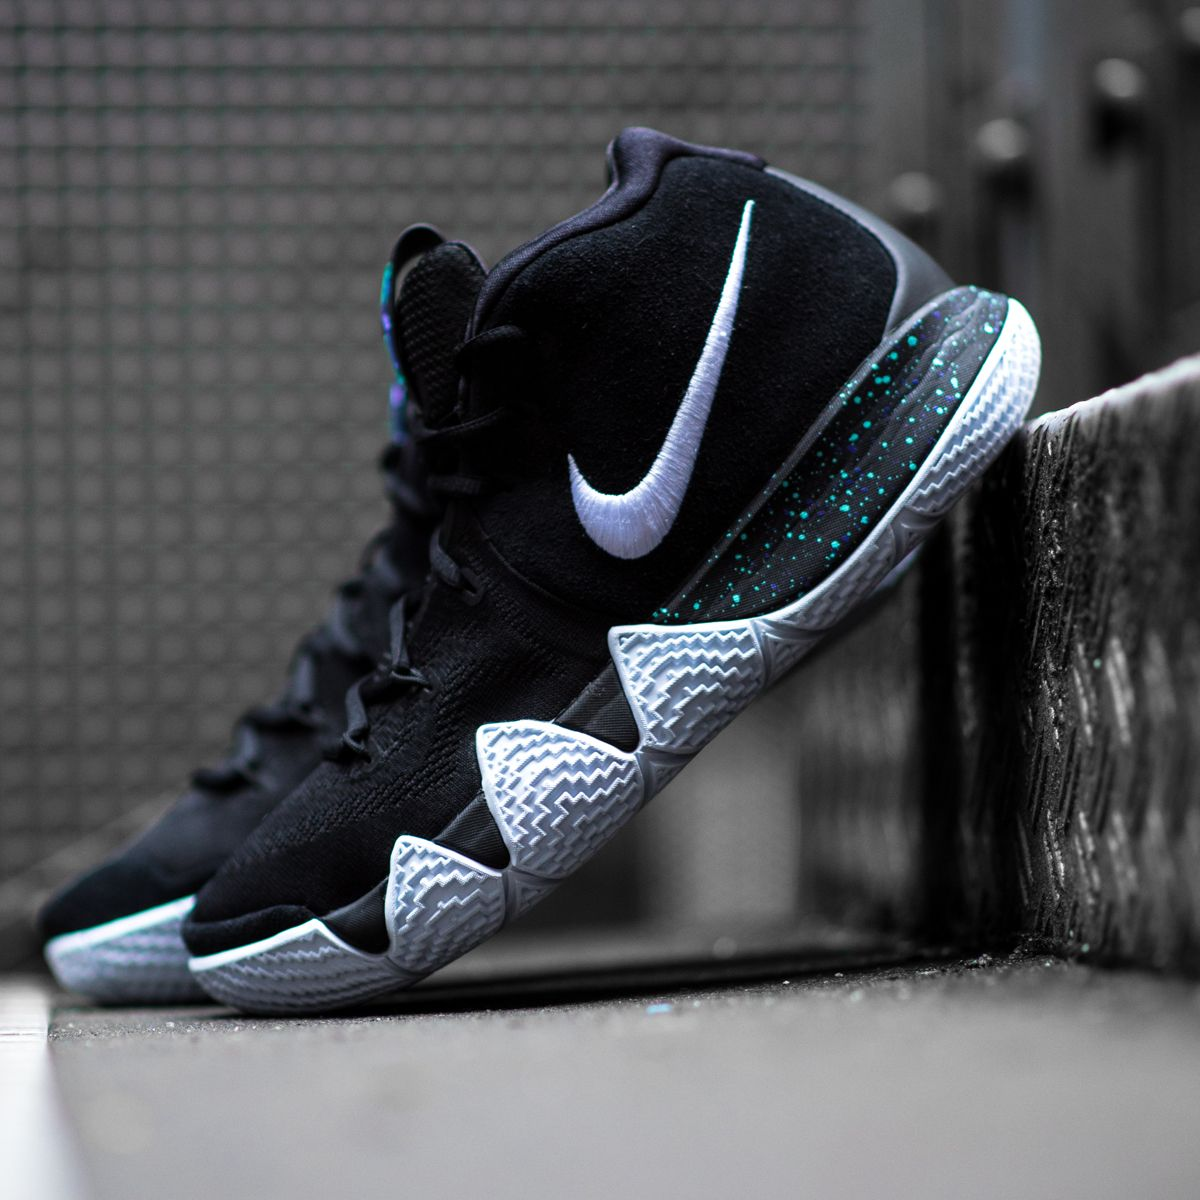 reputable site 53ba2 fef0f Kyrie s got some new shoes! Get the Nike Kyrie 4  Black Ice  now on  KICKZ.com and in selected stores!